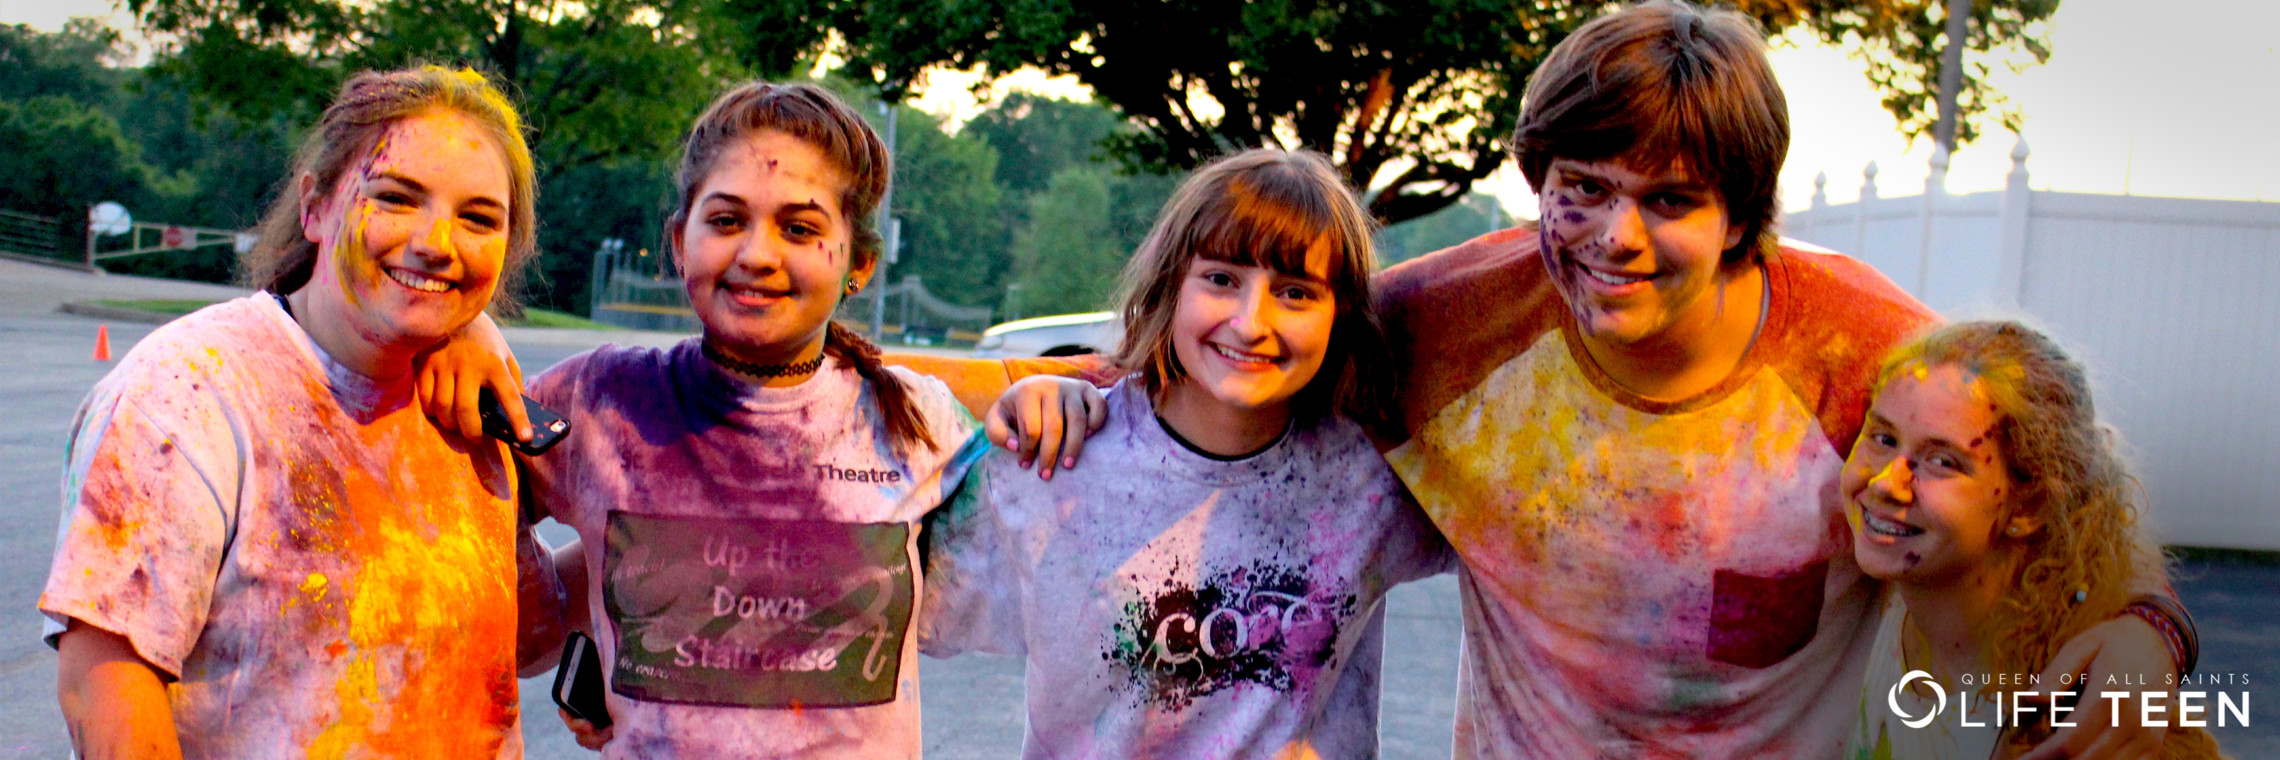 Queen of All Saints Life Teen St Louis Colour Run